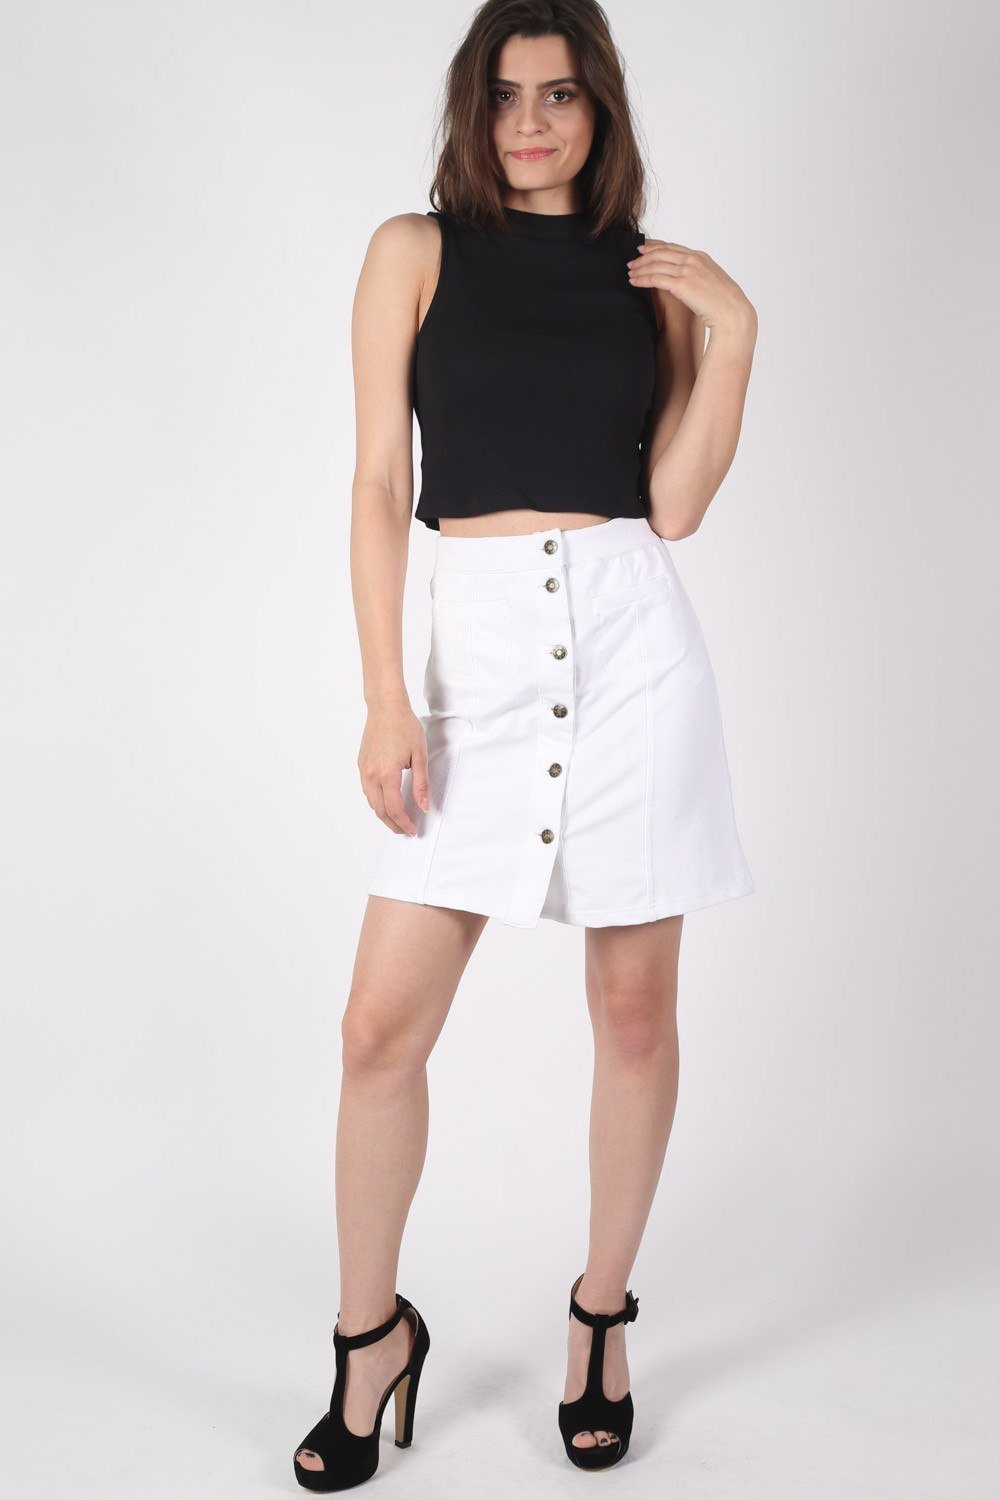 Patch Pocket Button Front Mini Skirt in White 0